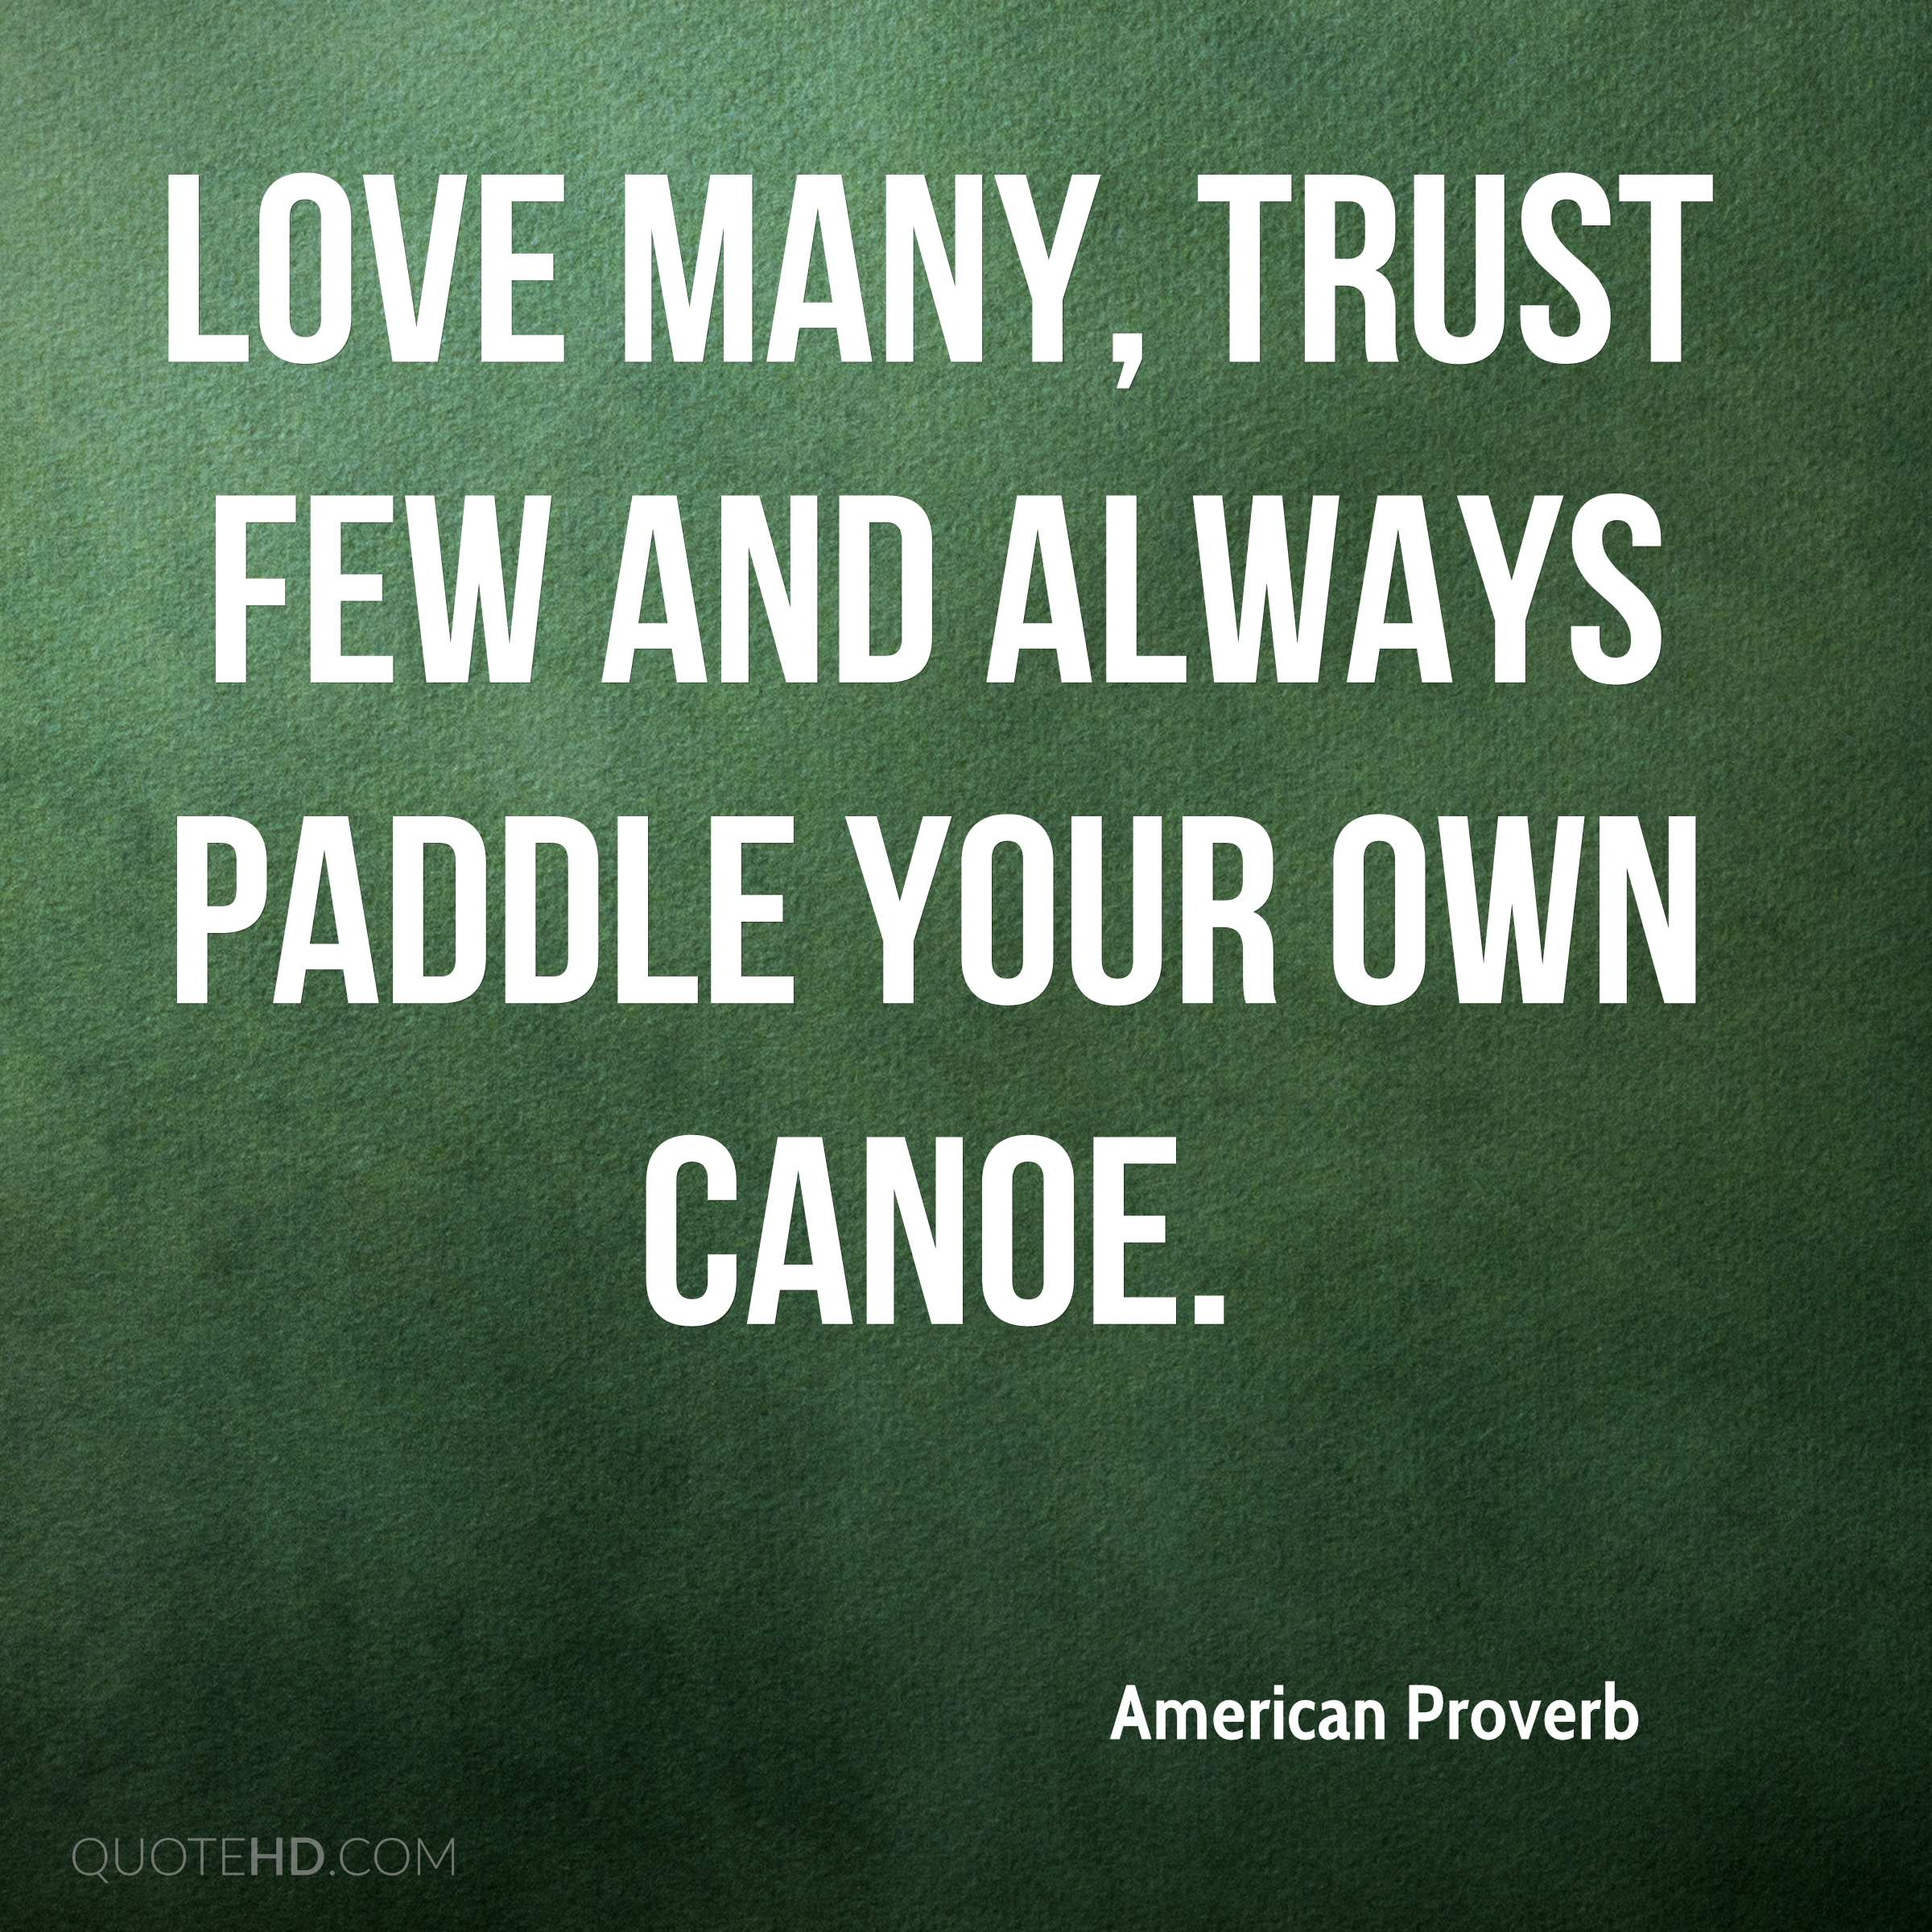 80 Quotes About Love And Romance : ... your own american proverb quotes quotehd,Love Many Trust Few Quotes